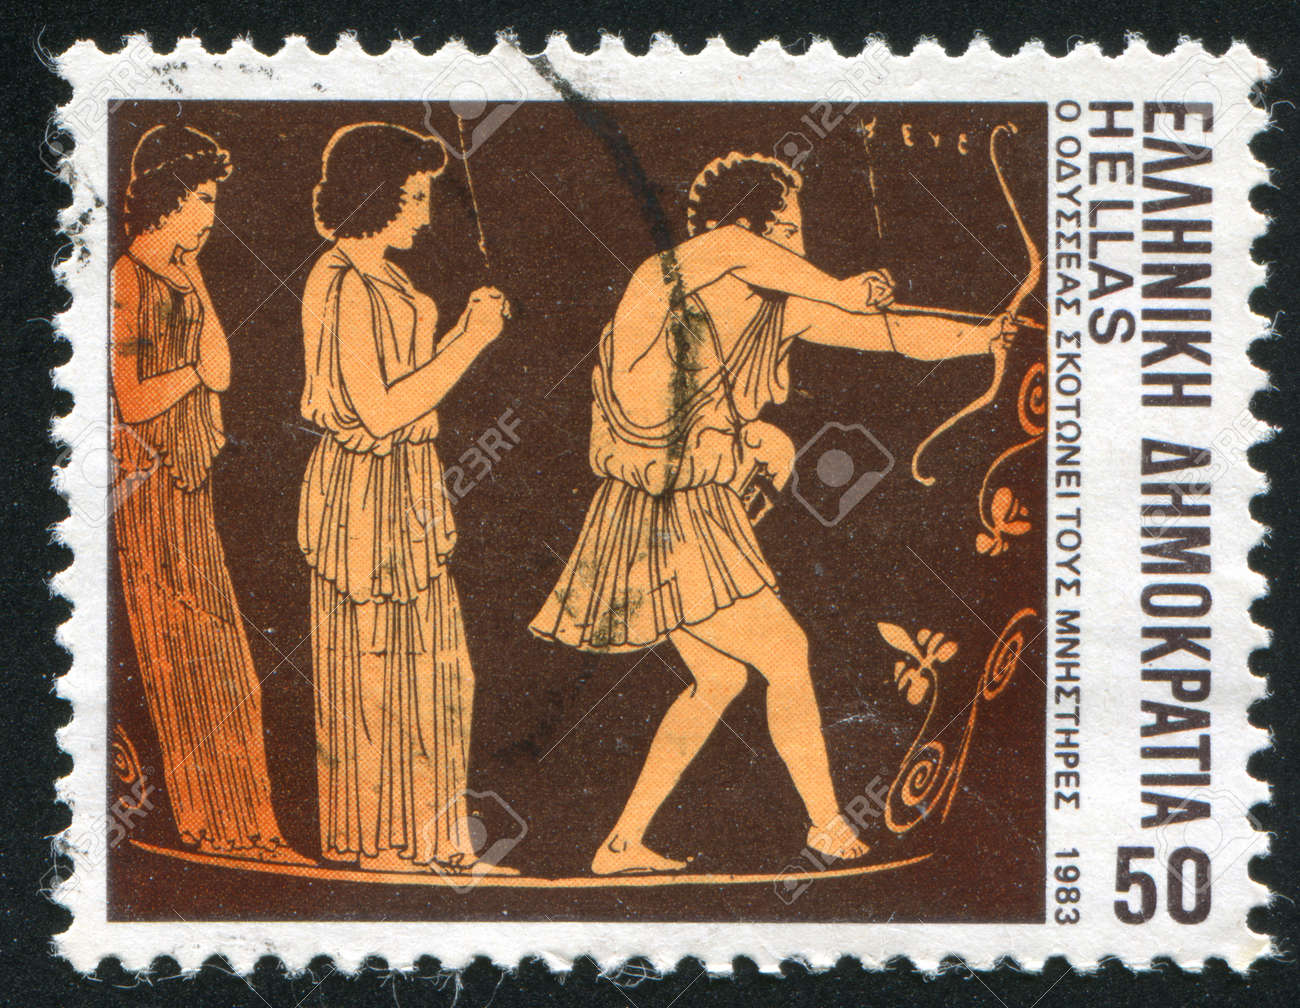 GREECE - CIRCA 1983: stamp printed by Greece, shows Ulysses slaying the suitors, circa 1983 Stock Photo - 14720619